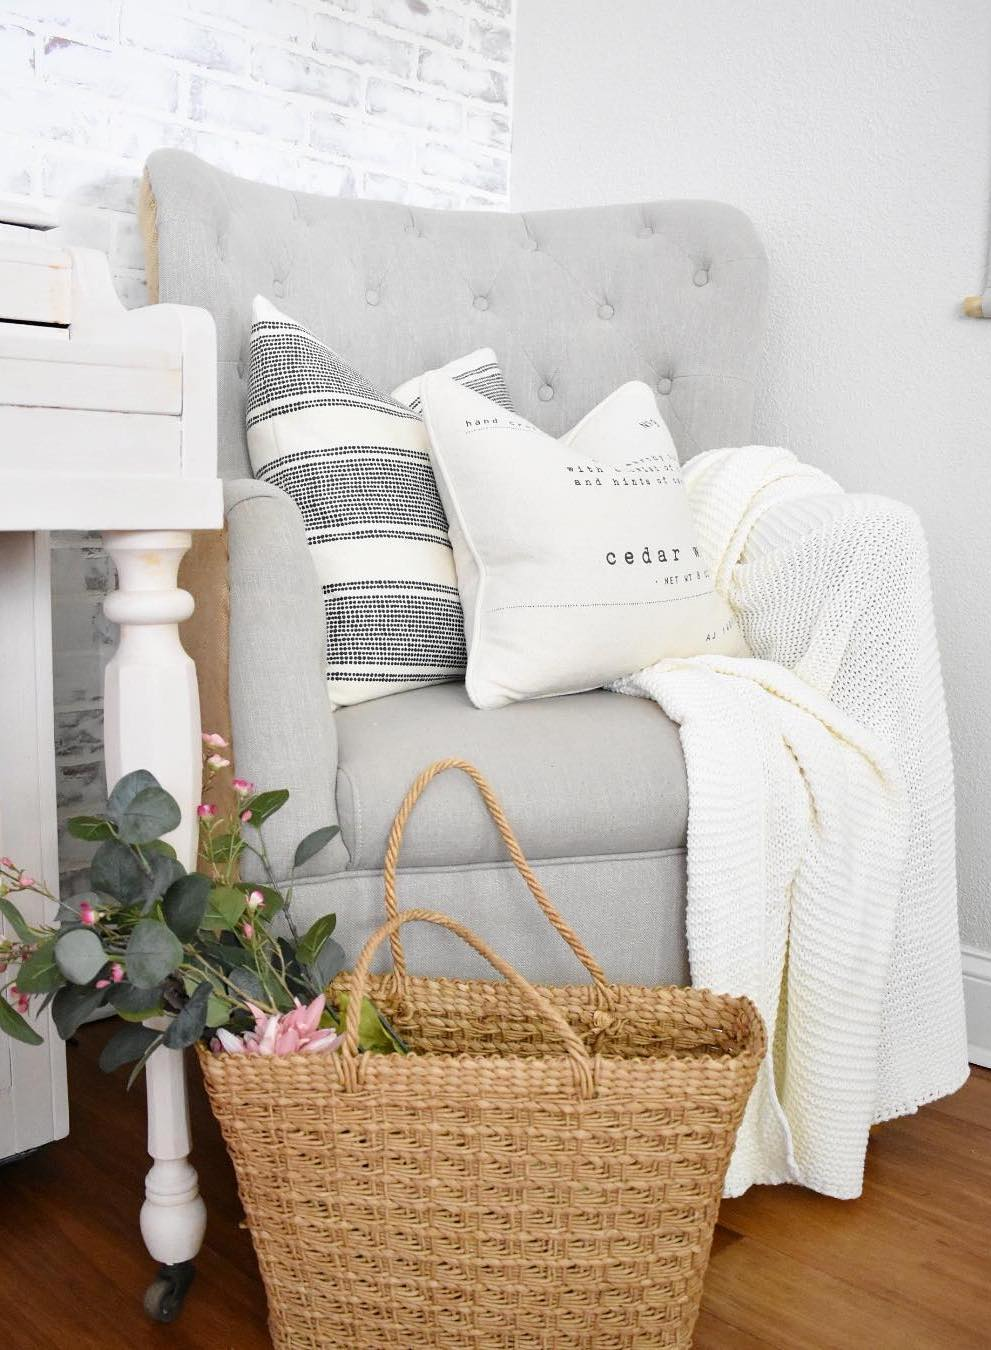 15 Farmhouse Throw Pillows For The Couch Bed And More